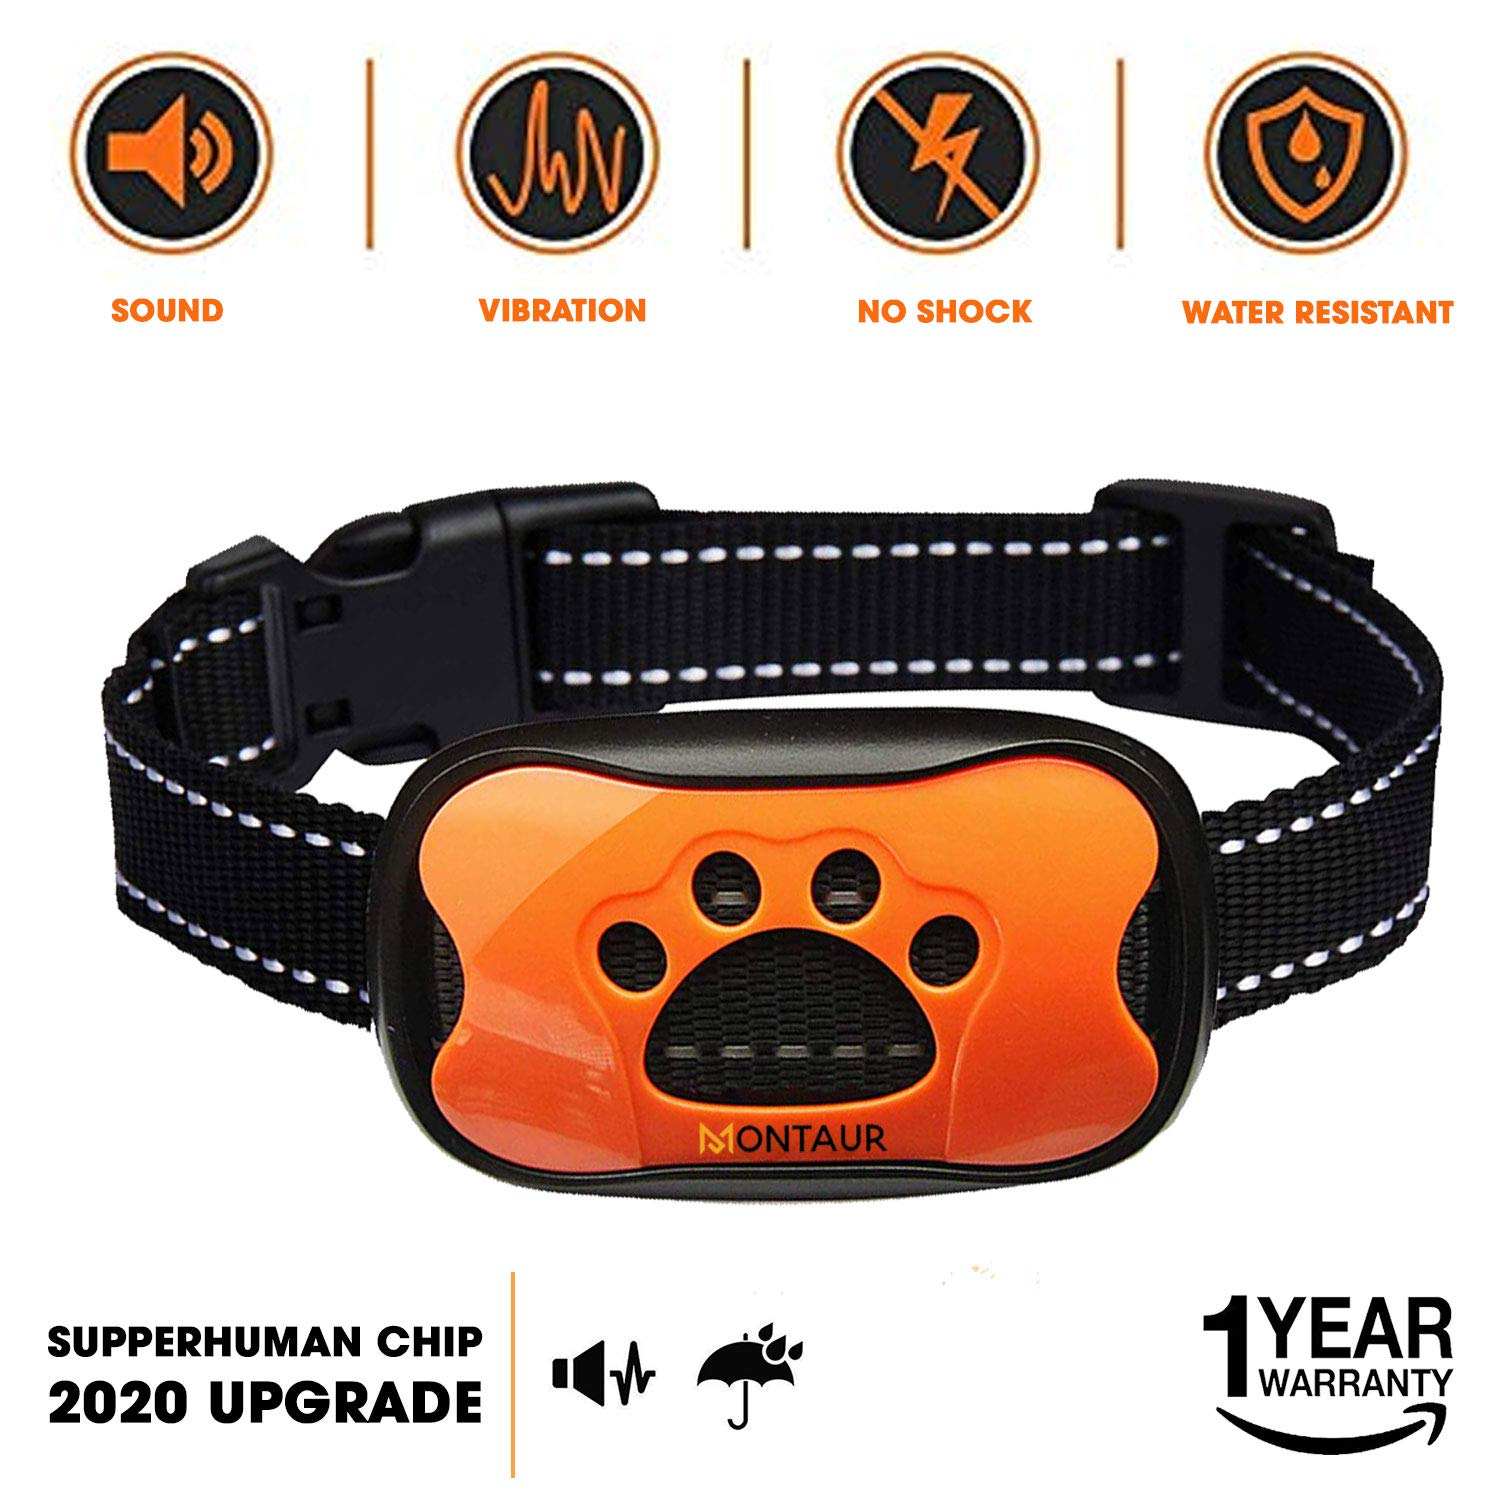 MONTAUR Dog Bark Collar - no Shock Vibration and Sound Stop Barking Collar for Dogs - 7 Level Sensitivities Anti Bark Collar - Humane Dog Barking Control Collar - 100% Waterproof no Bark Collar by MONTAUR